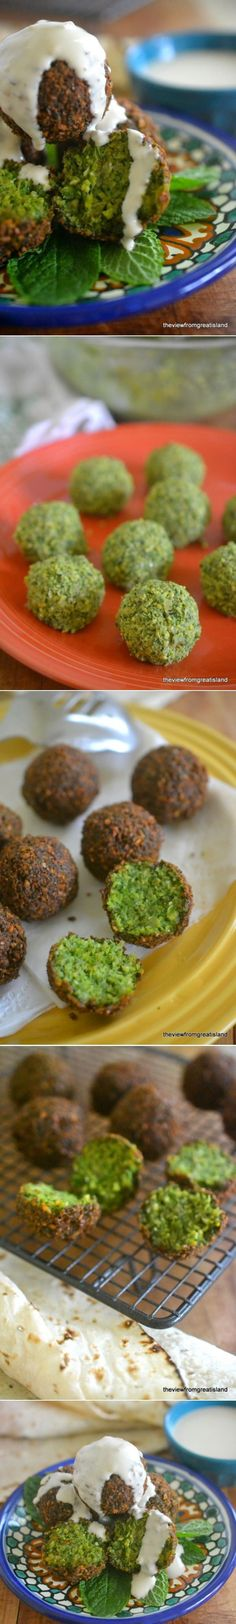 """The best Falafel by """"The view from great island"""" 